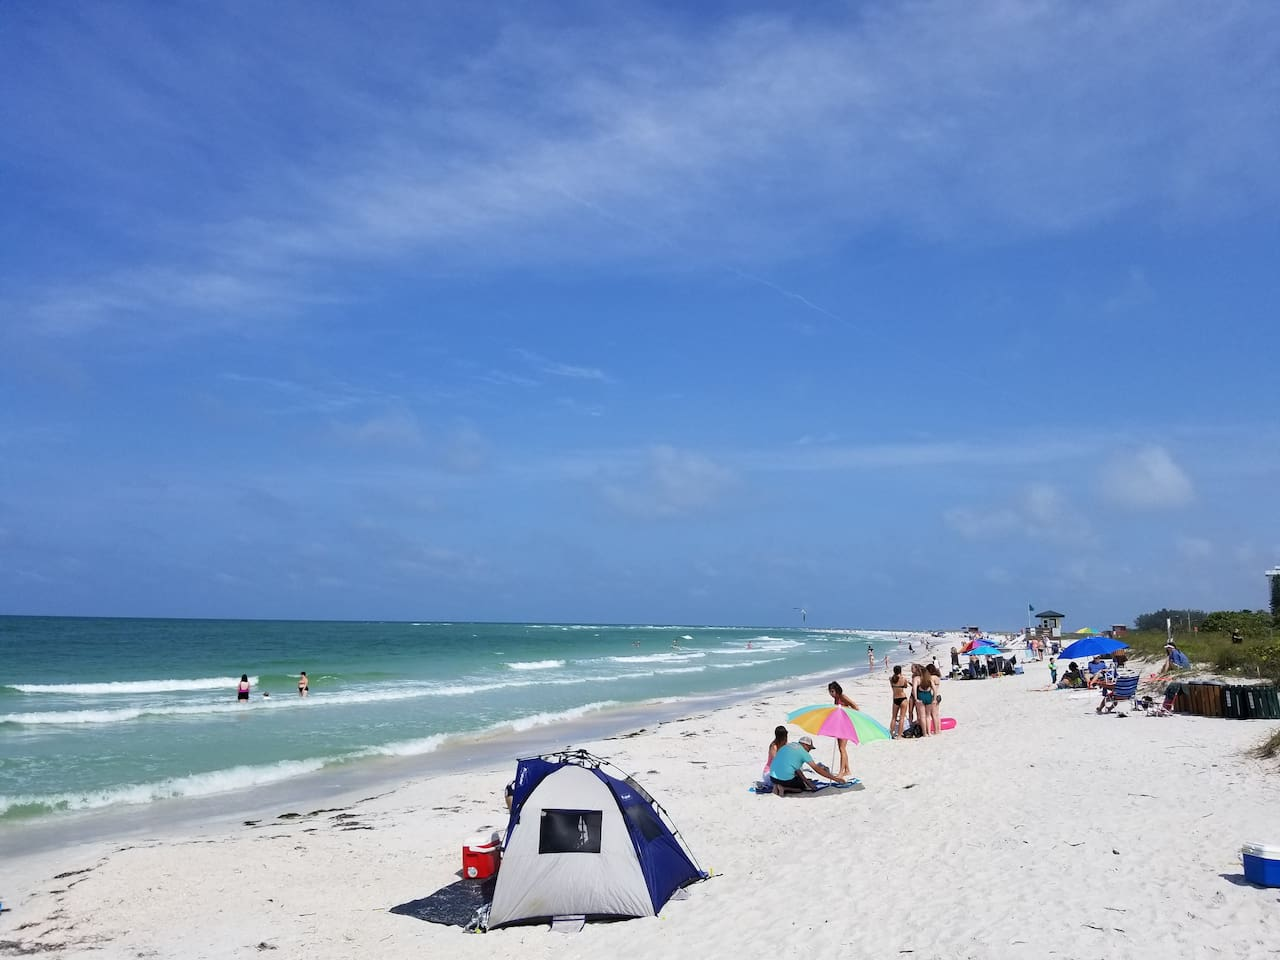 Photo from June 3, 2018 the calm after Tropical Storm Alberto. The beach came back!